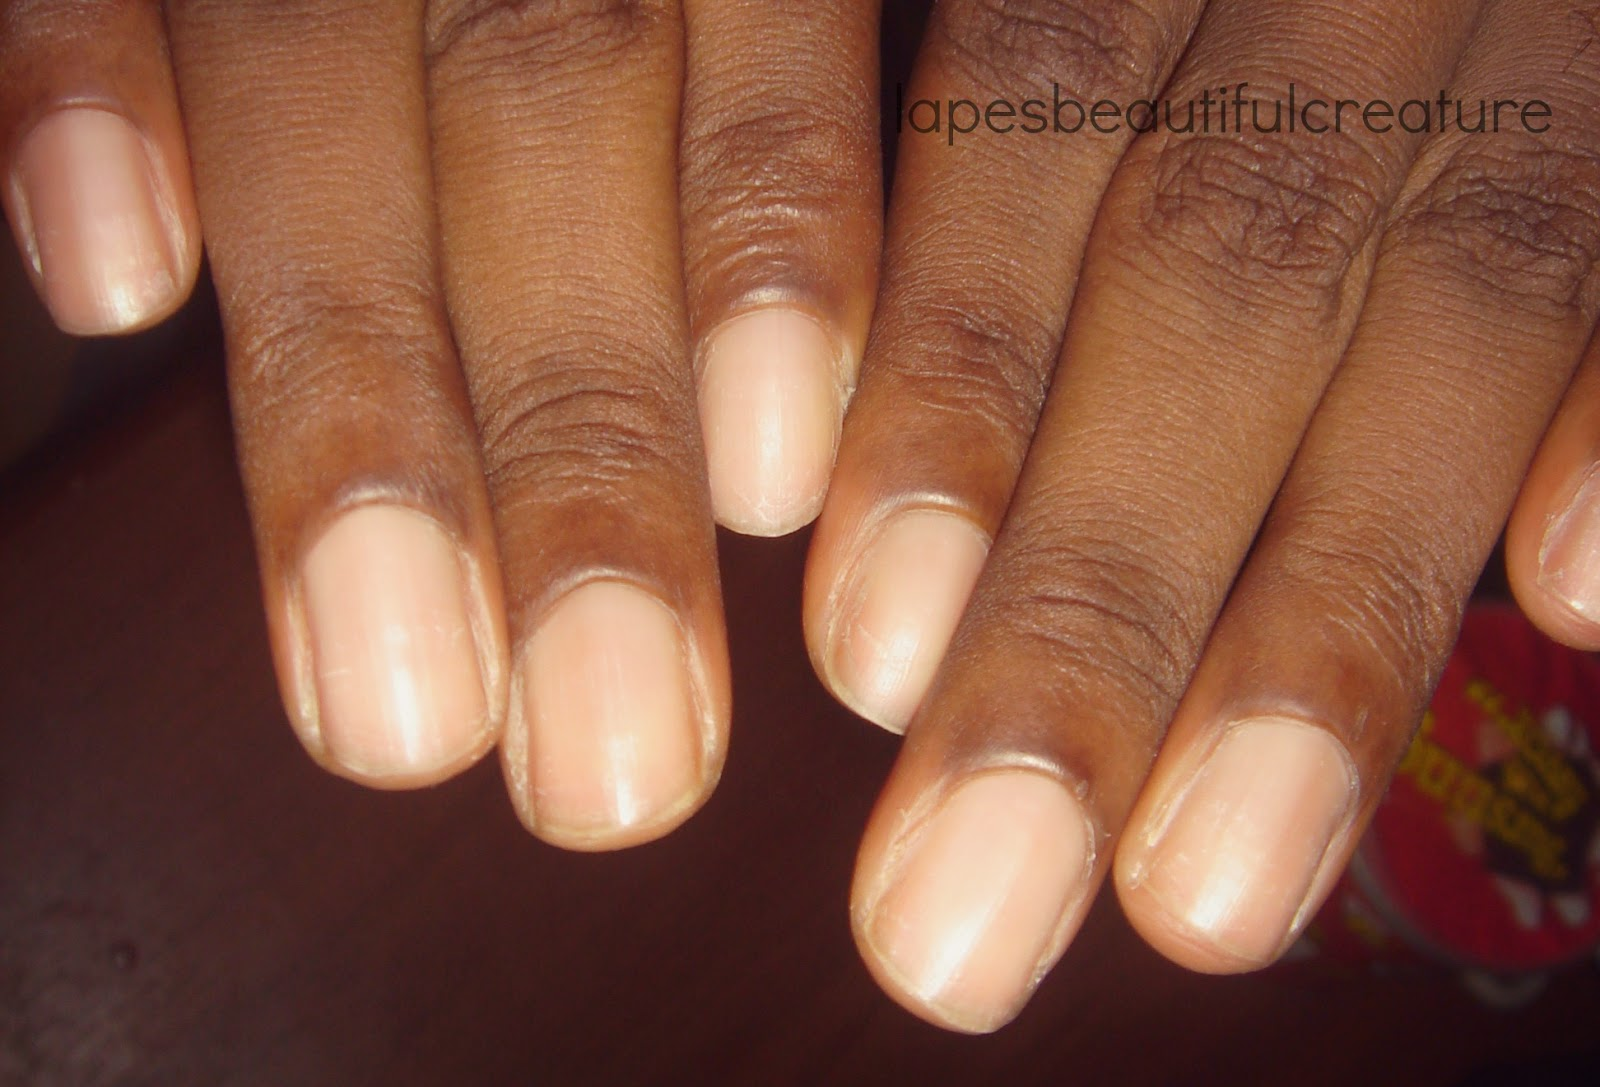 Disadvantages Of Acrylic Nails And How To Repair Damage To Natural ...